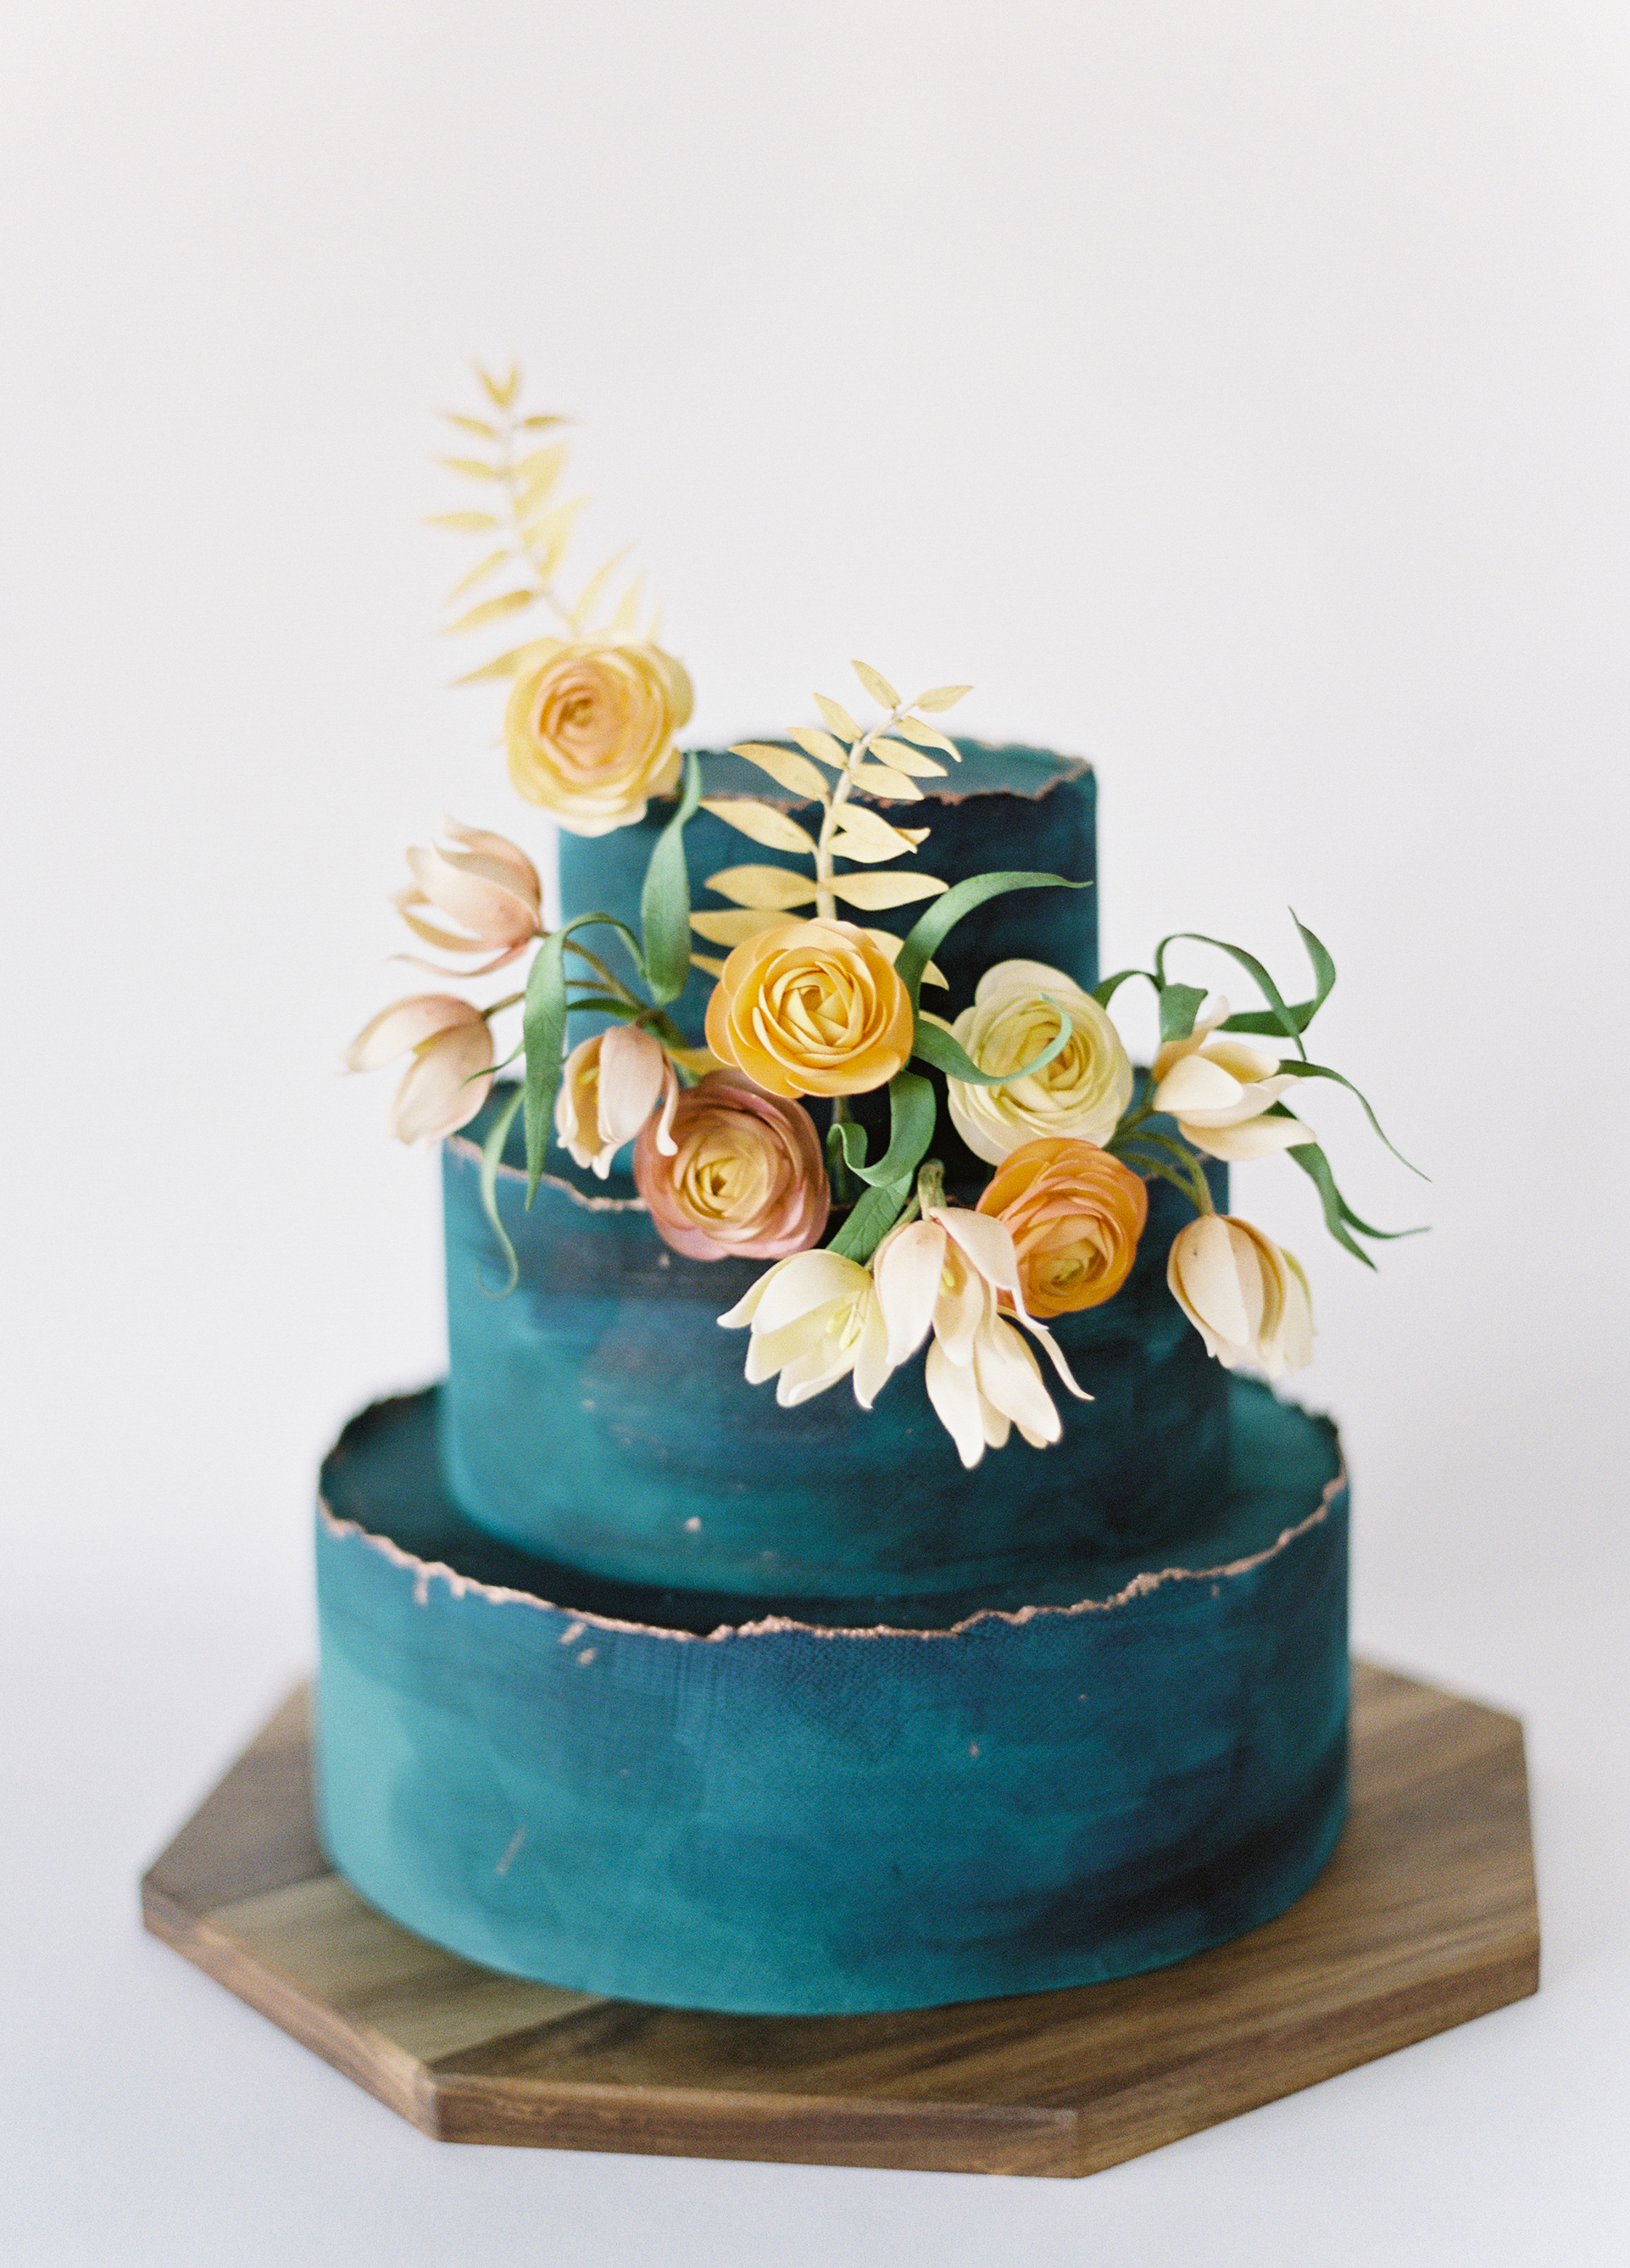 Teal Cake with Deckle-Edge Detail, Fall Wedding Cake Trends